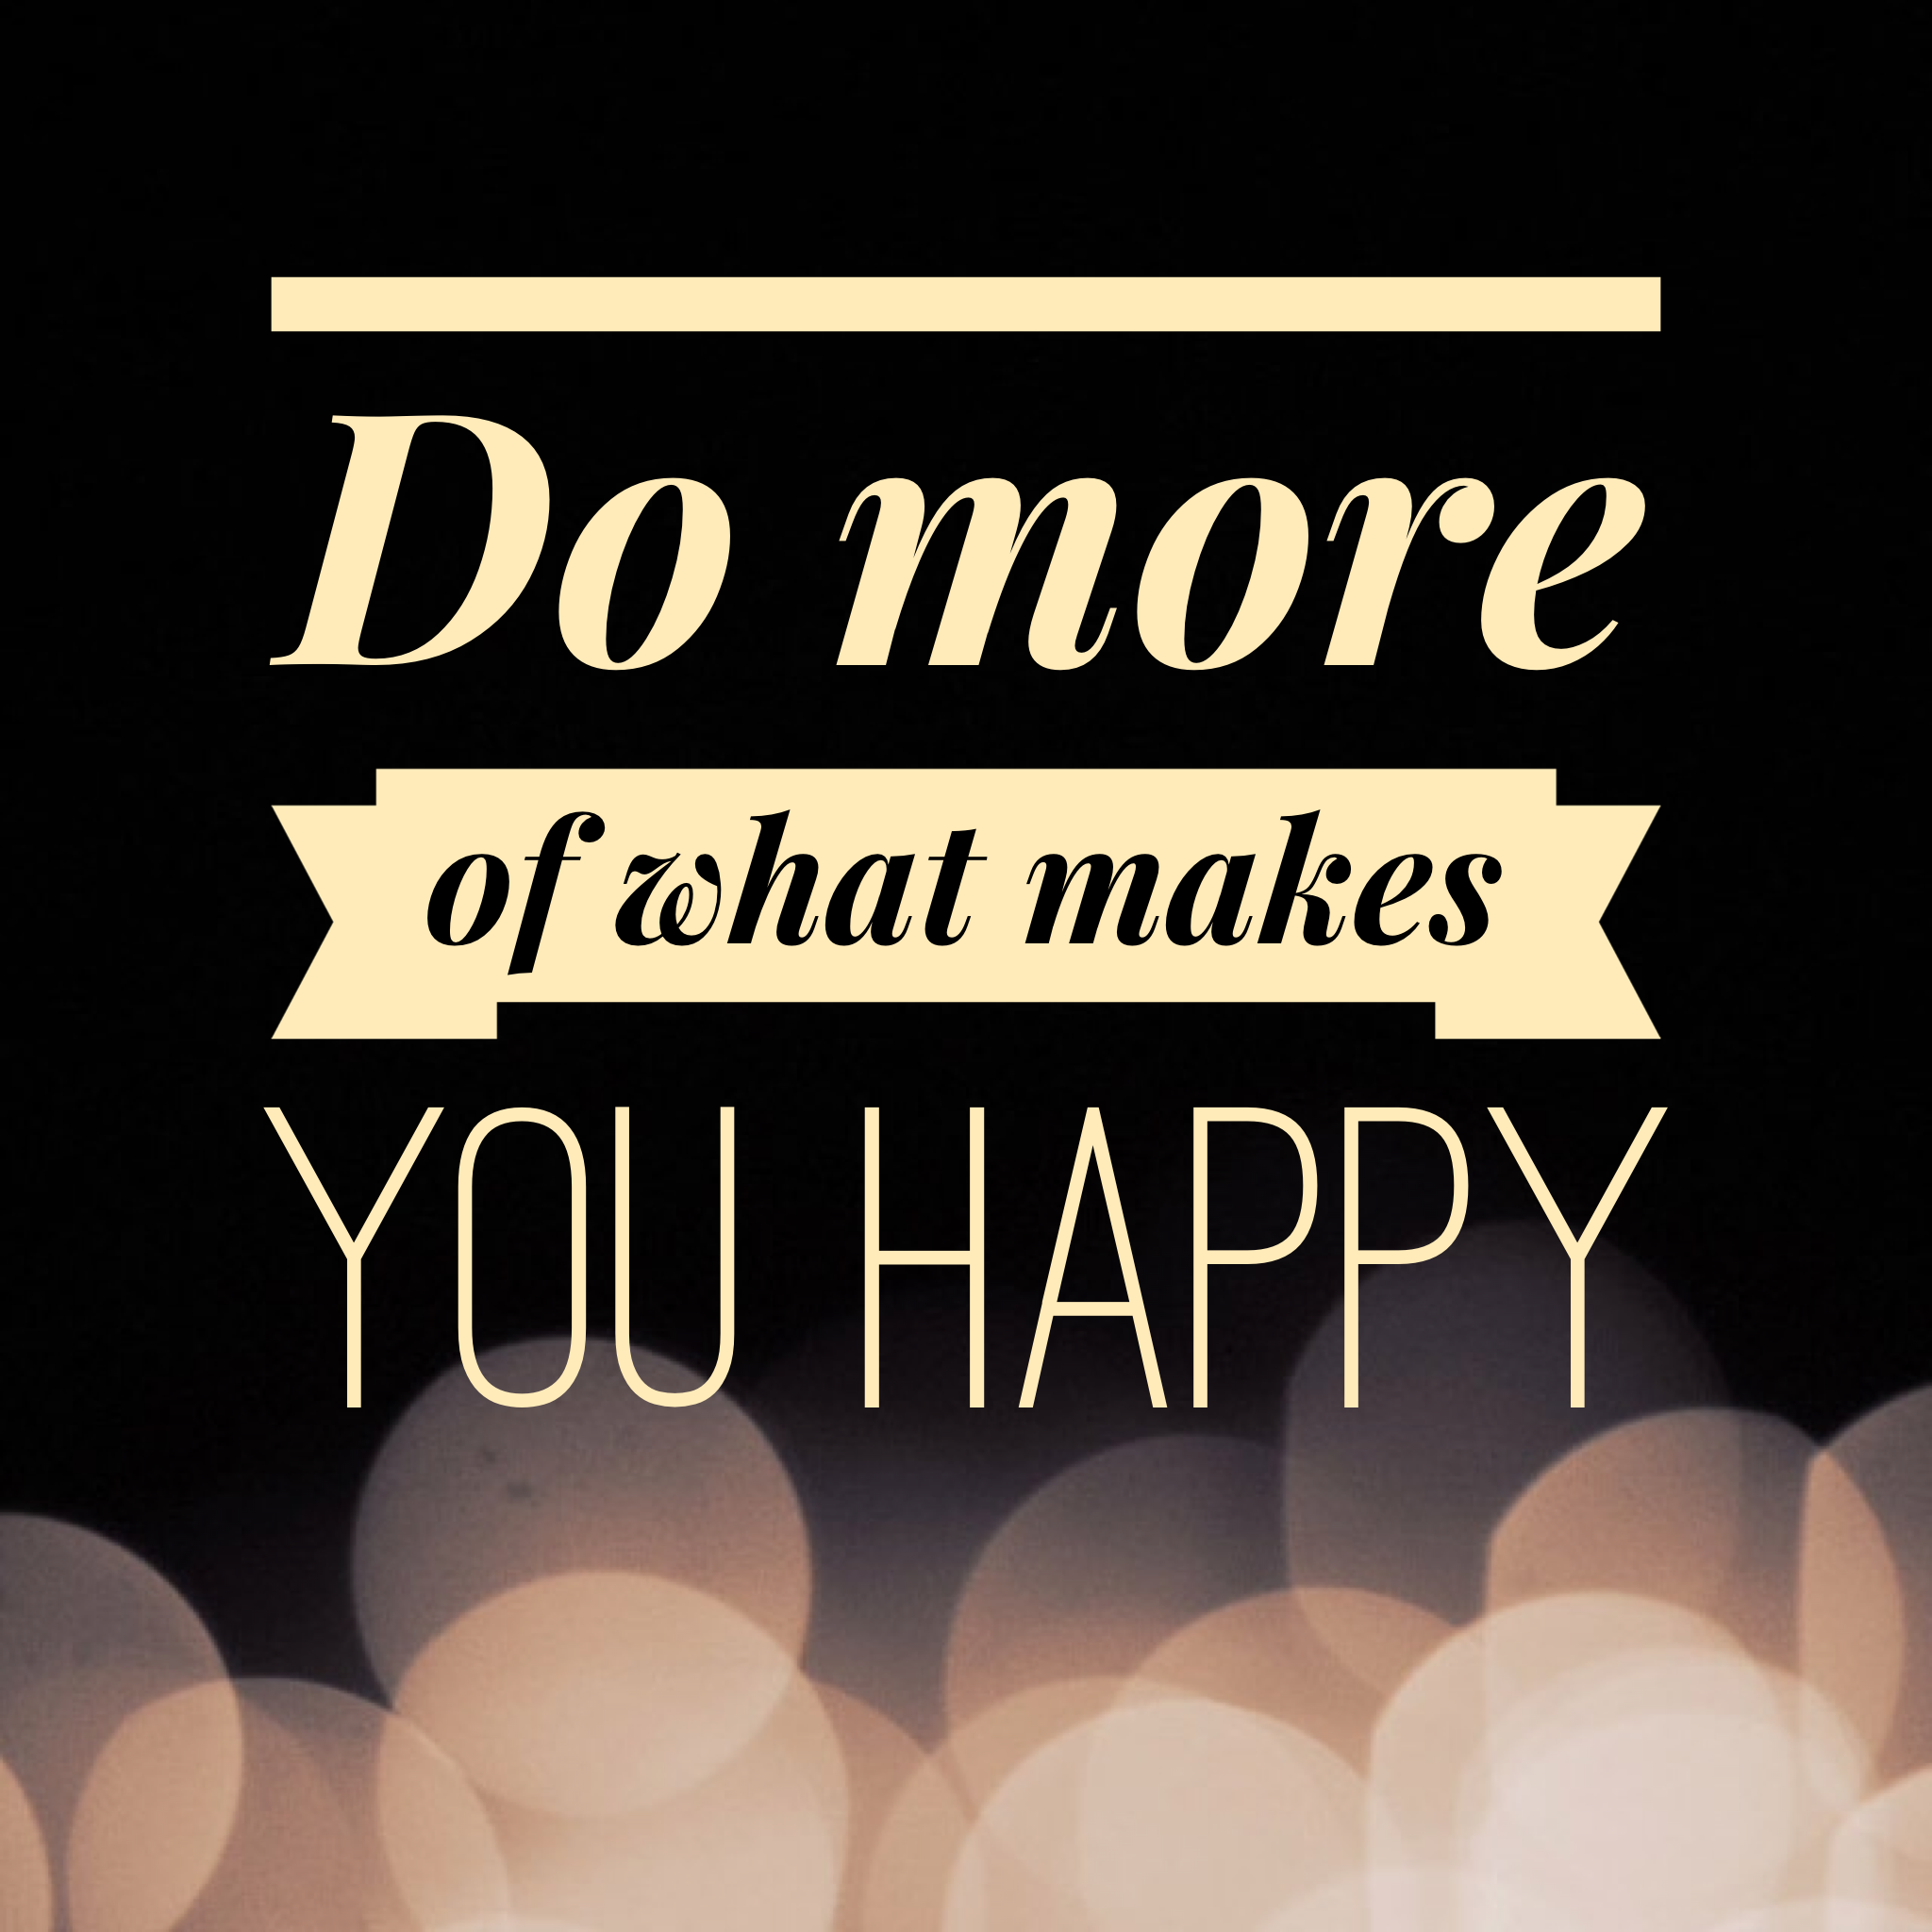 do more of what makes you happy - competition